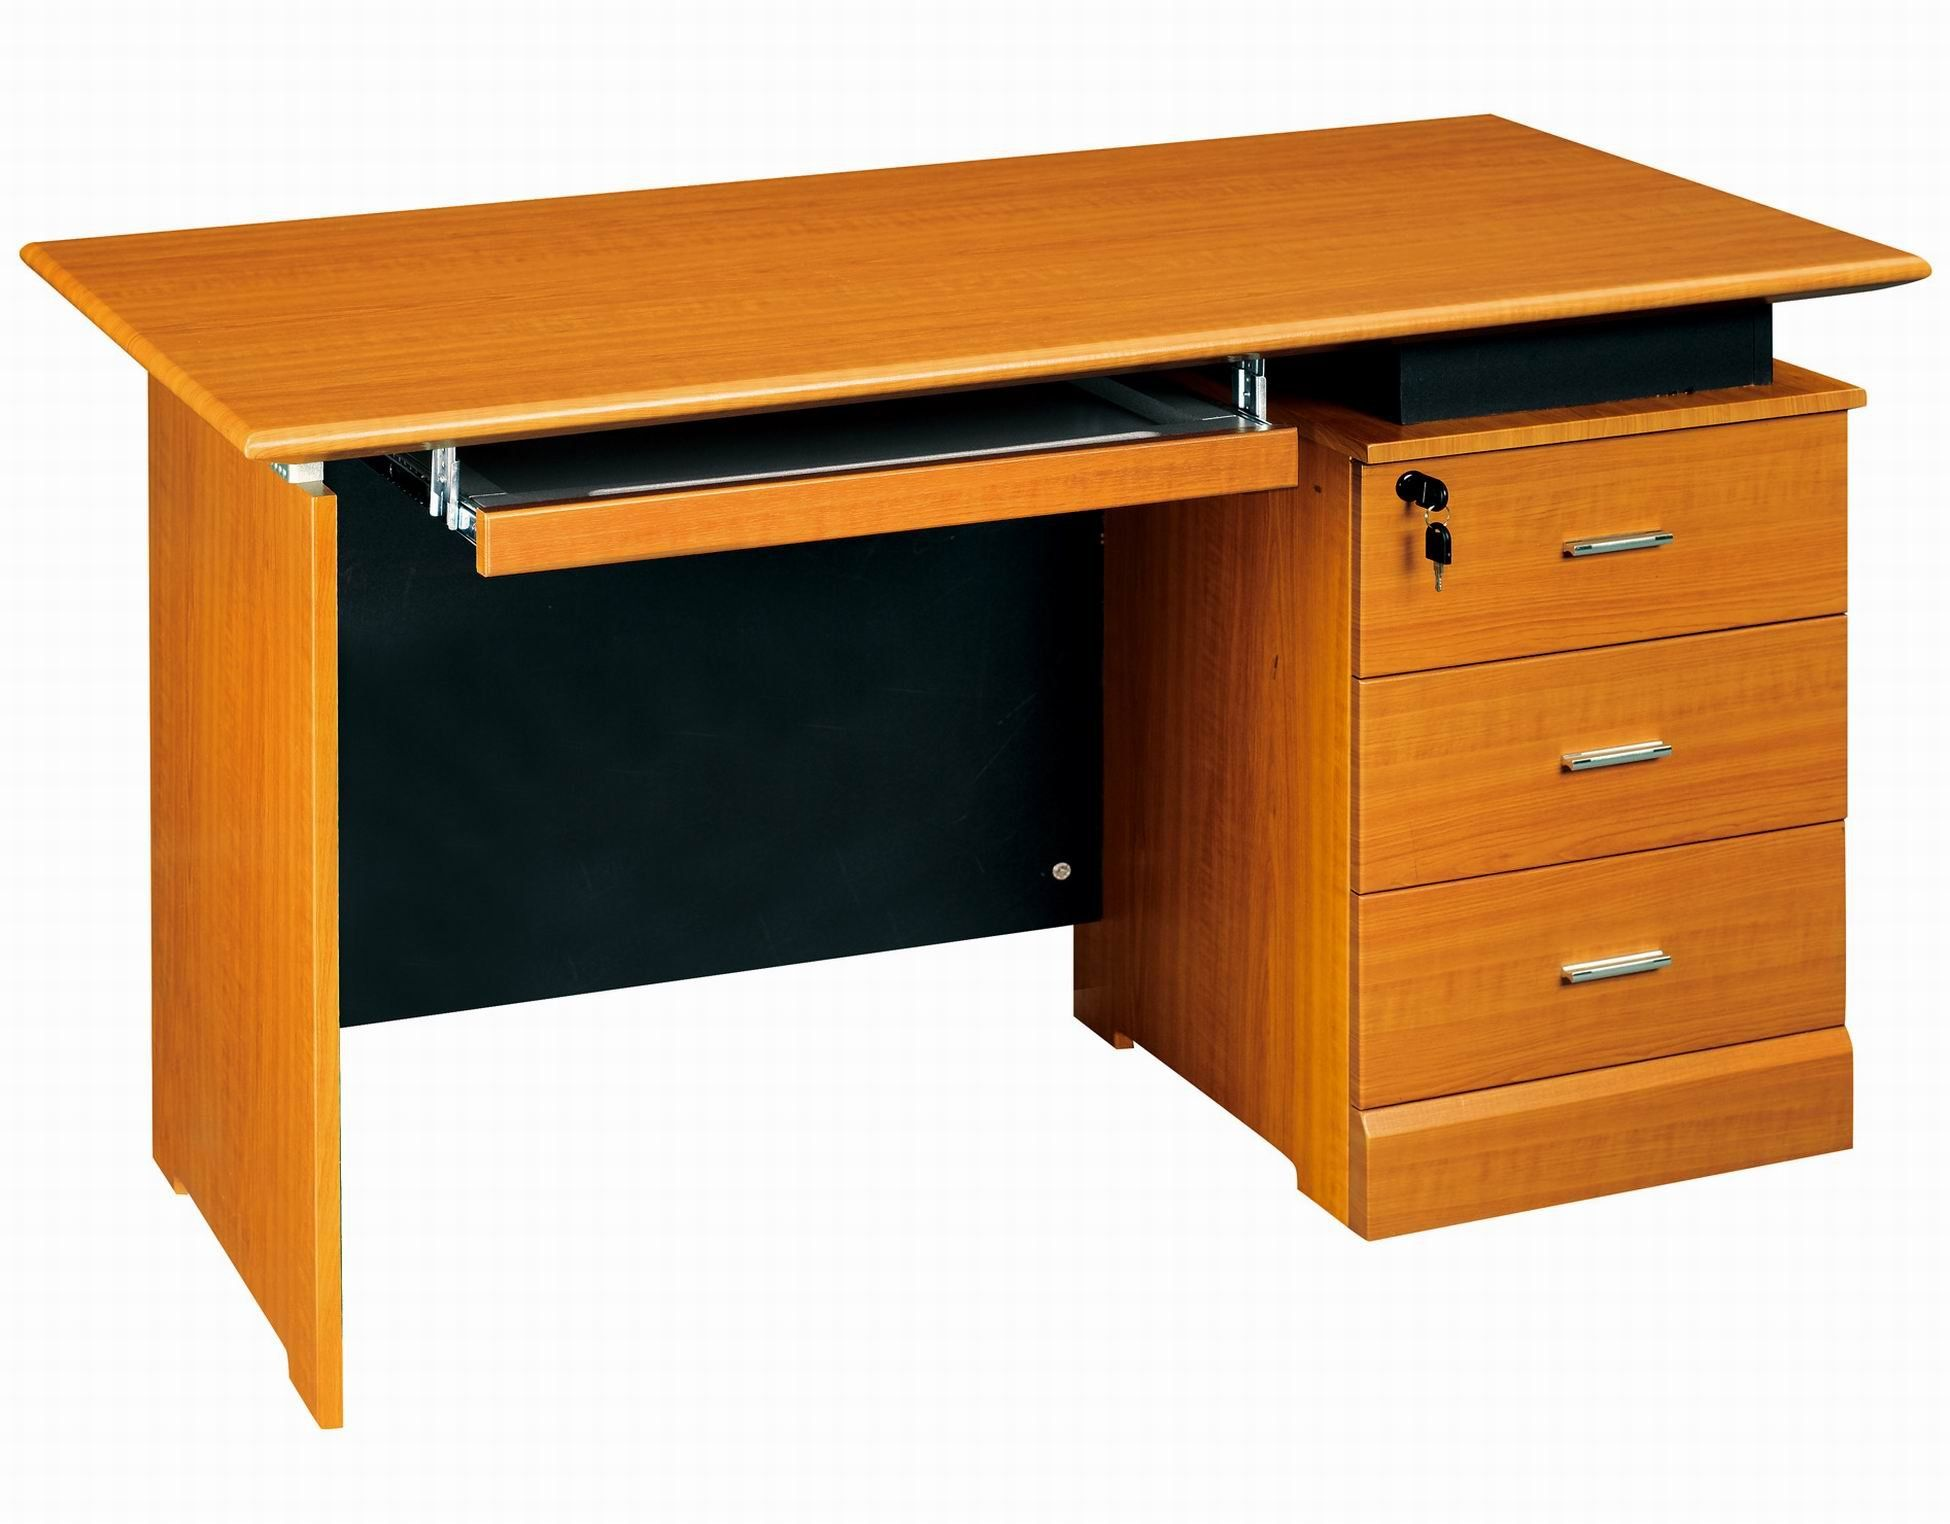 tables for office. Buy Office Table Online Tables For 6